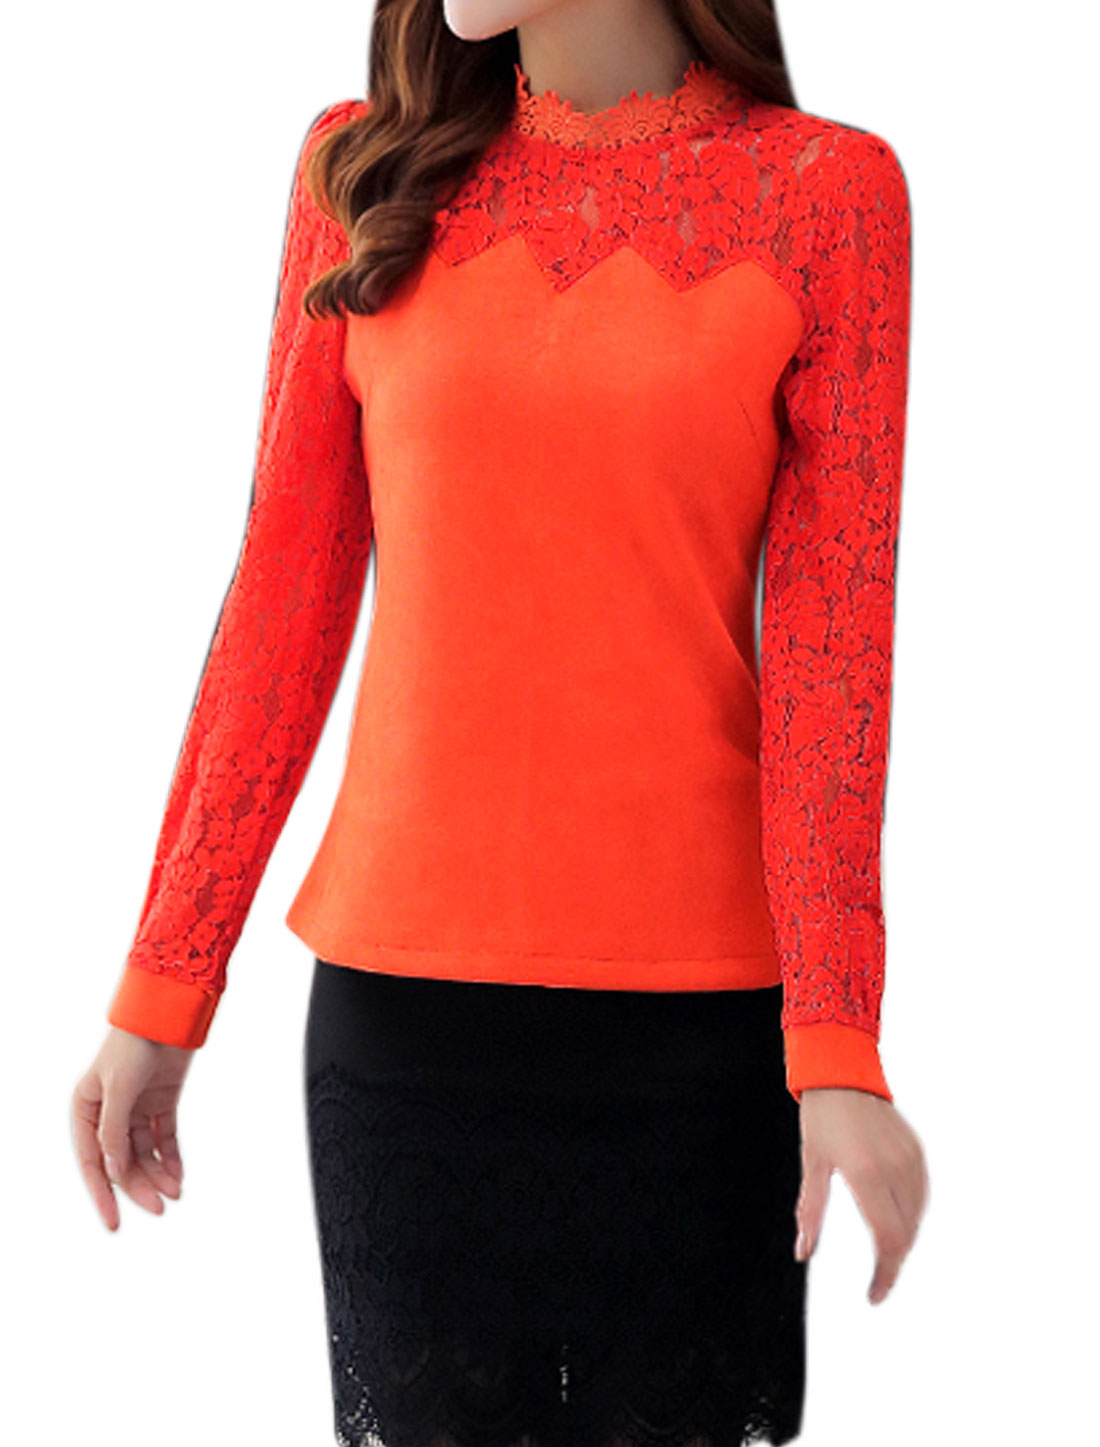 Ladies Long Sleeves Lace Panel See Through Yoke Slim Fit Shirt Orange M